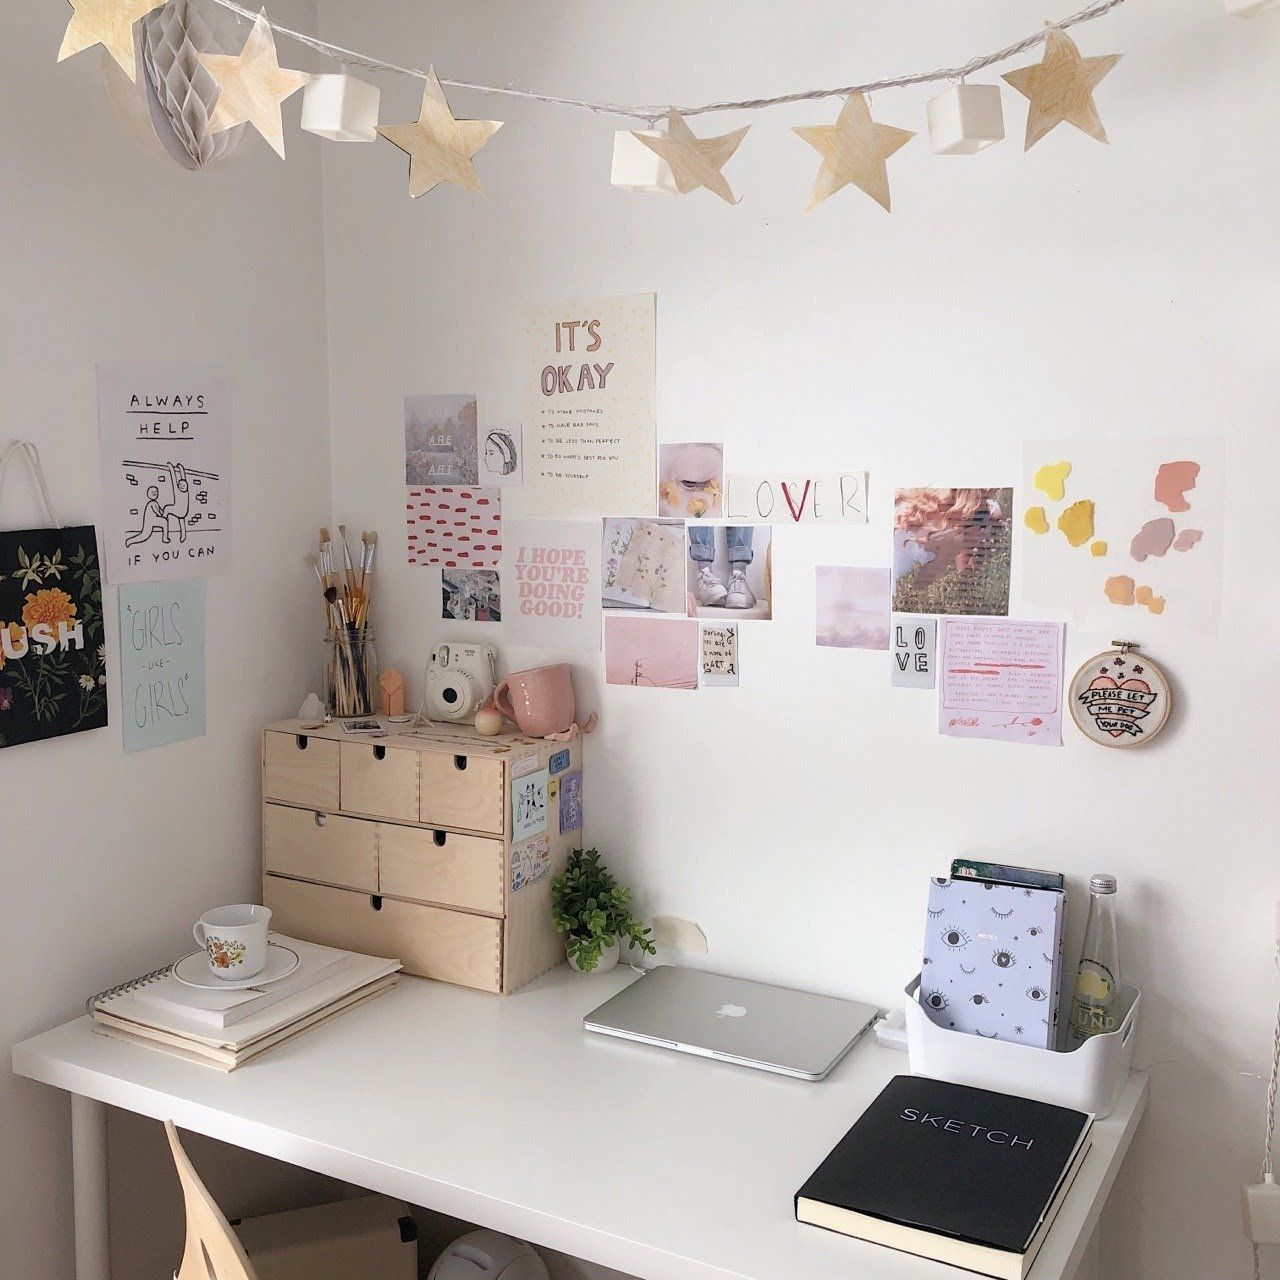 Pastel Bedroom Artsy Aesthetic Soft Aesthetic Artsy Pastel Bedroom Artsy Aesthetic In 2020 Study Room Decor Army Room Decor Room Ideas Bedroom